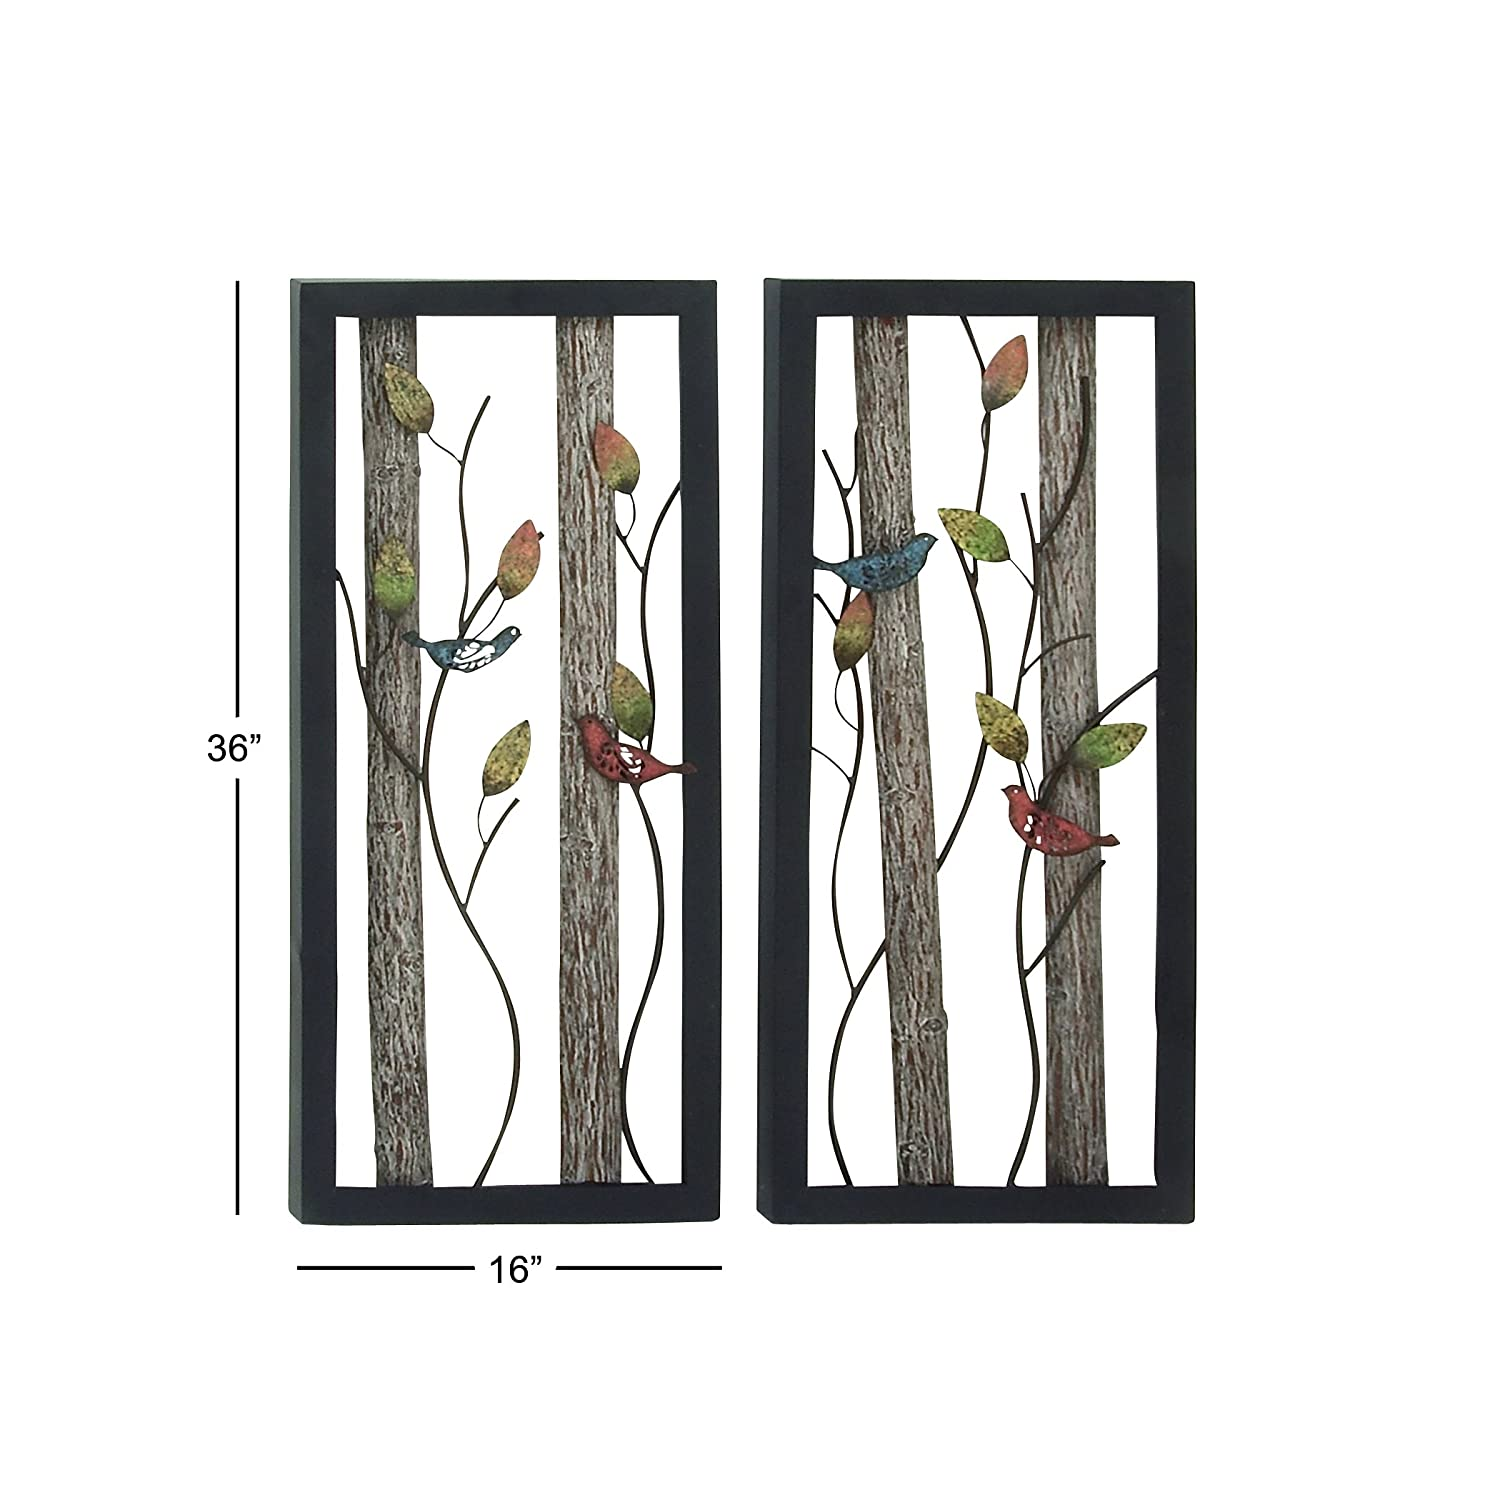 ArtWall ArtApeelz Dean Uhlinger Manana Suculentos Removable Graphic Wall Art 24 by 32-Inch